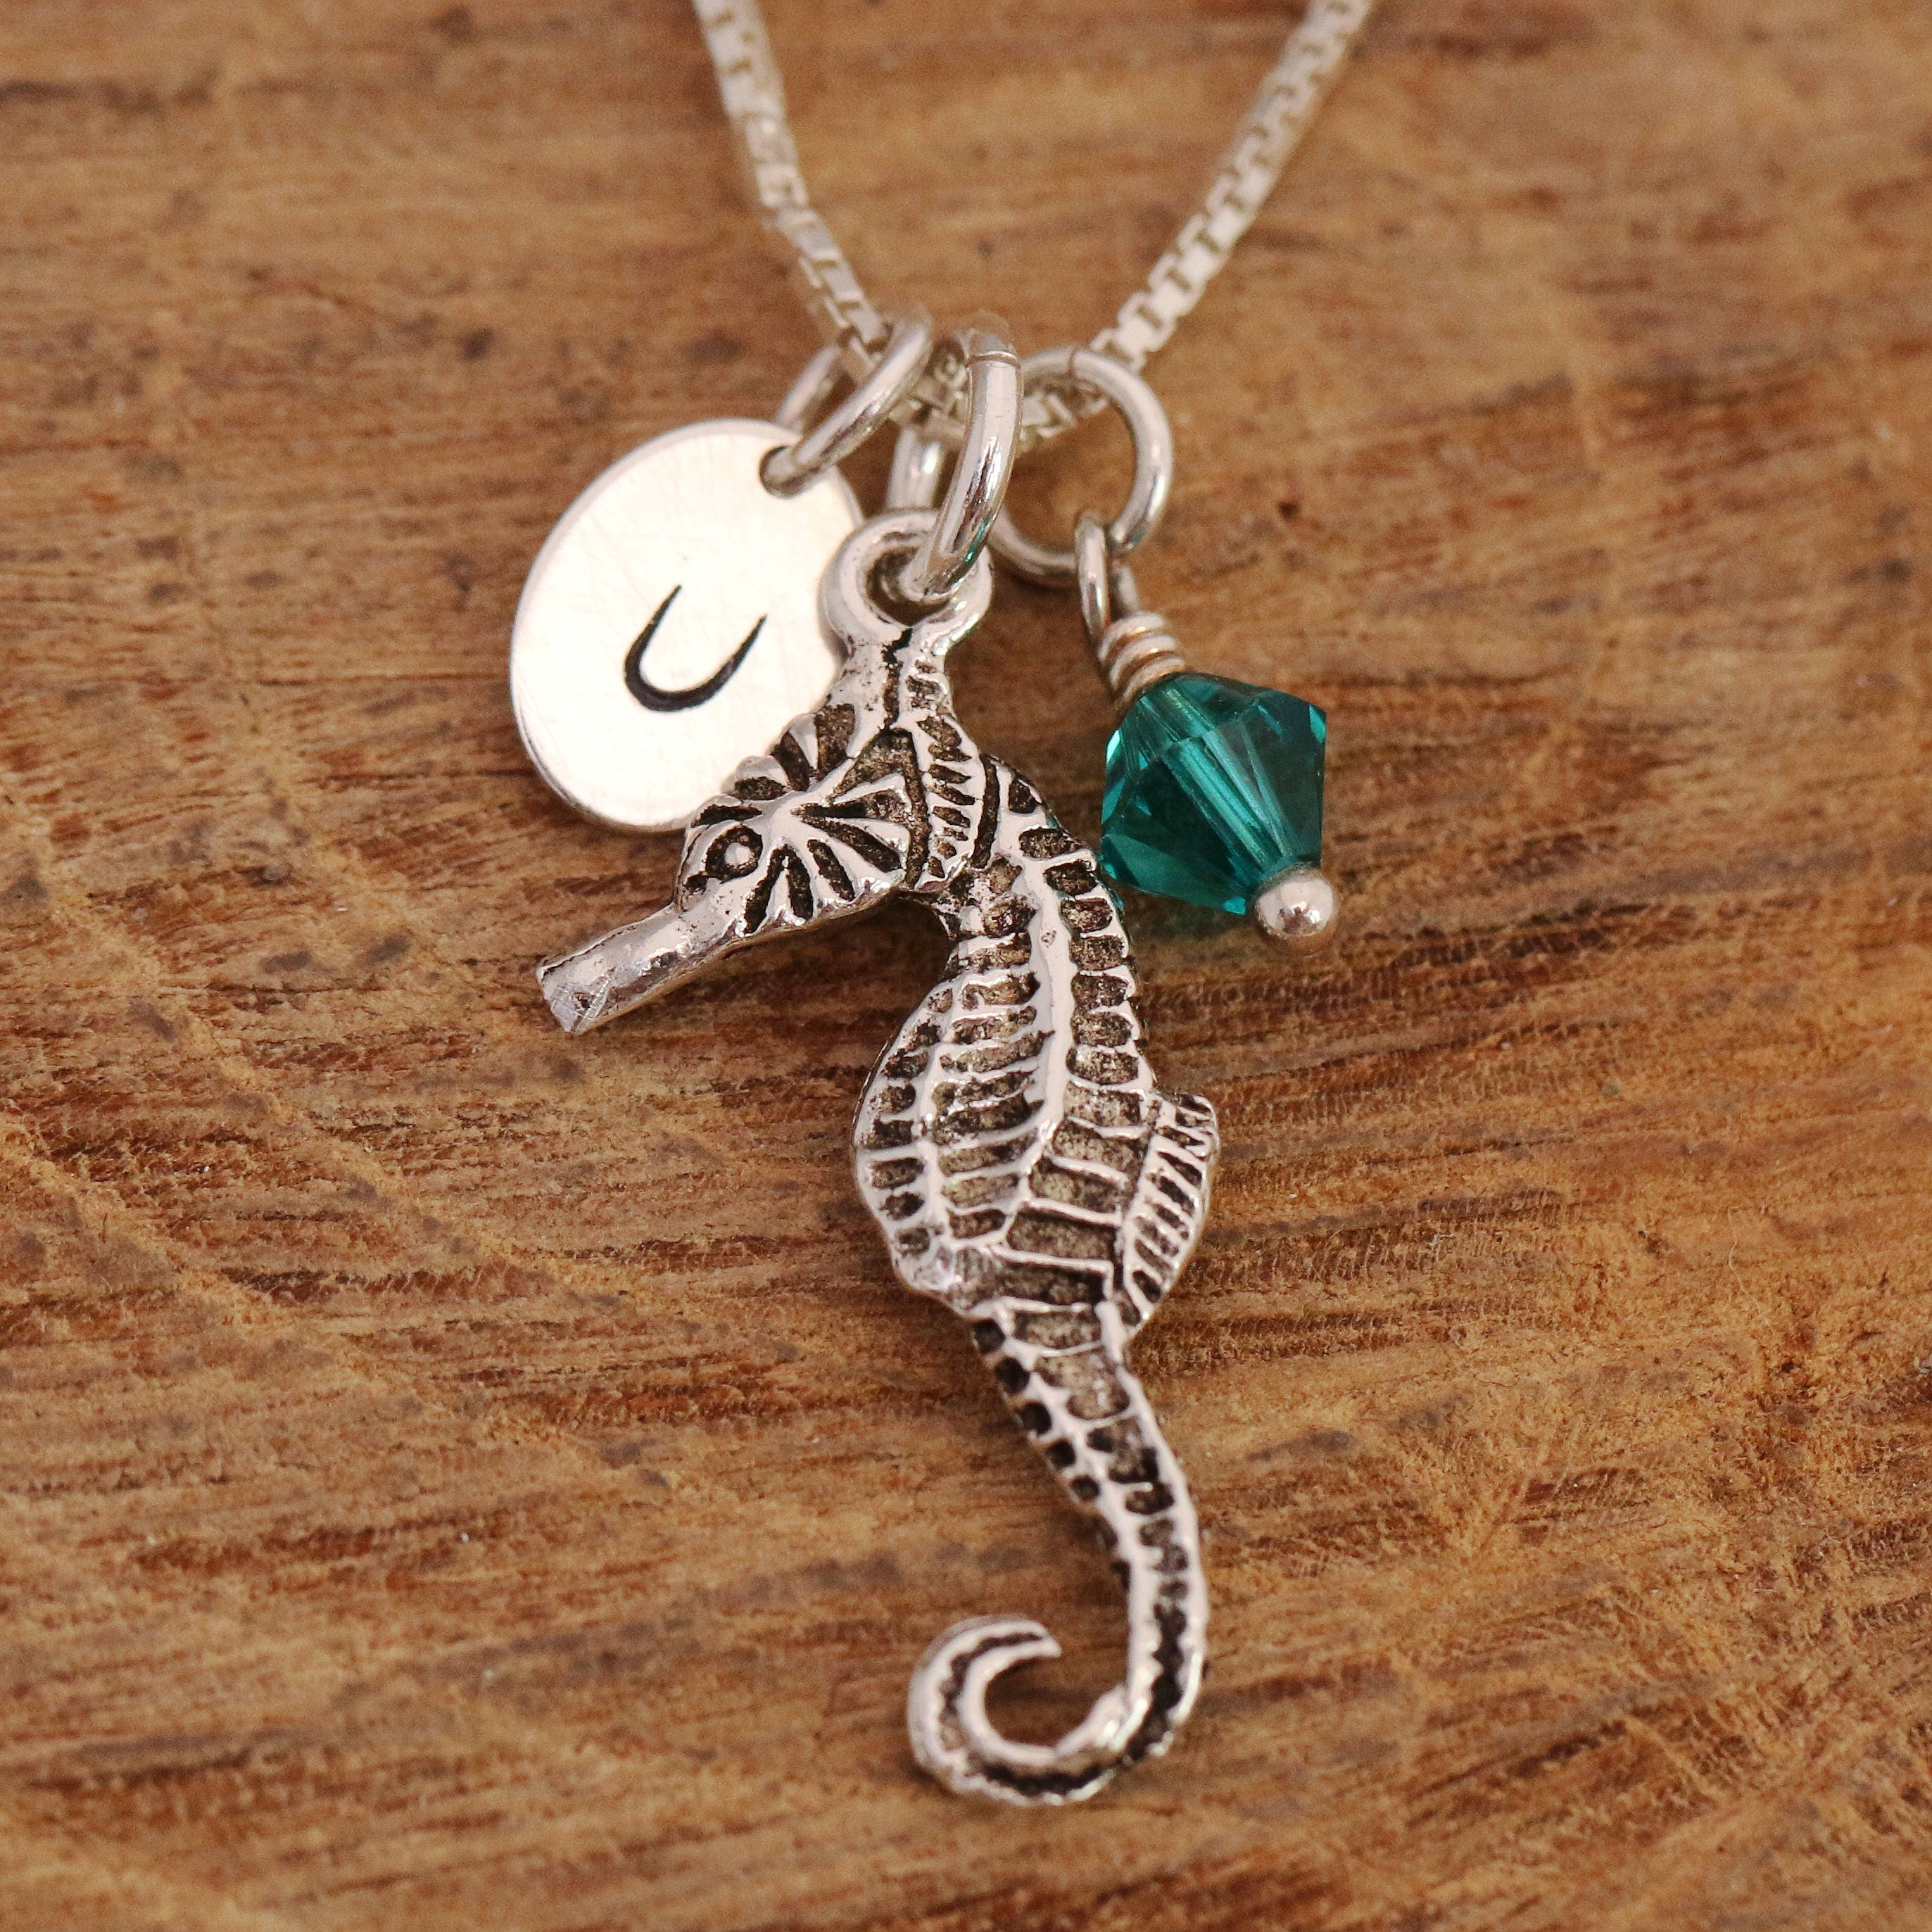 seahorse pendant pin by green with silver the apothecary jewelry etsy seaglass mermaid soft via necklace